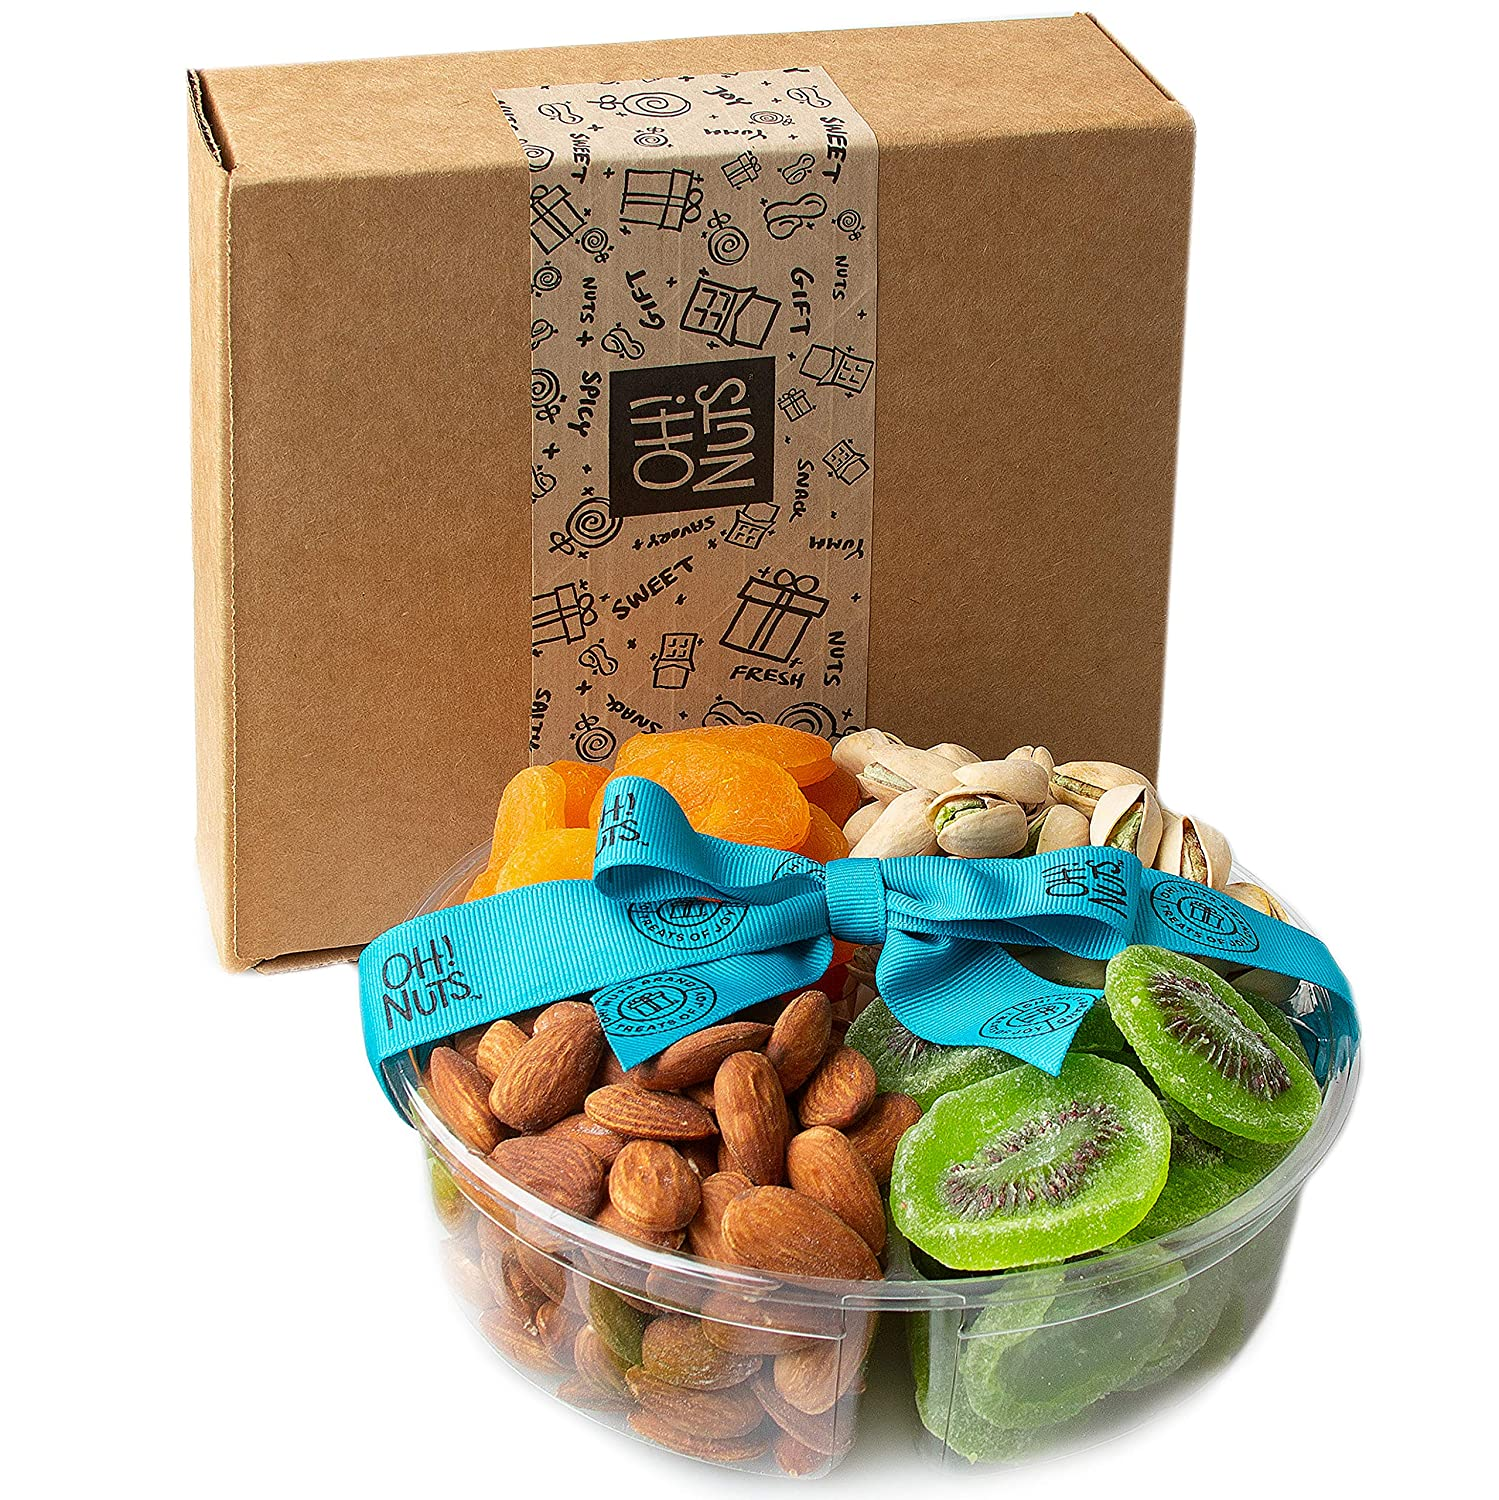 Oh! Nuts 4 Section Dried Fruits & Nuts Gift Platter for Mothers Day, Healthy Food Kosher Snack Box, Variety Fresh Assortment Tray, Perfect Healthy Gift for Mothers Day Gifting Idea